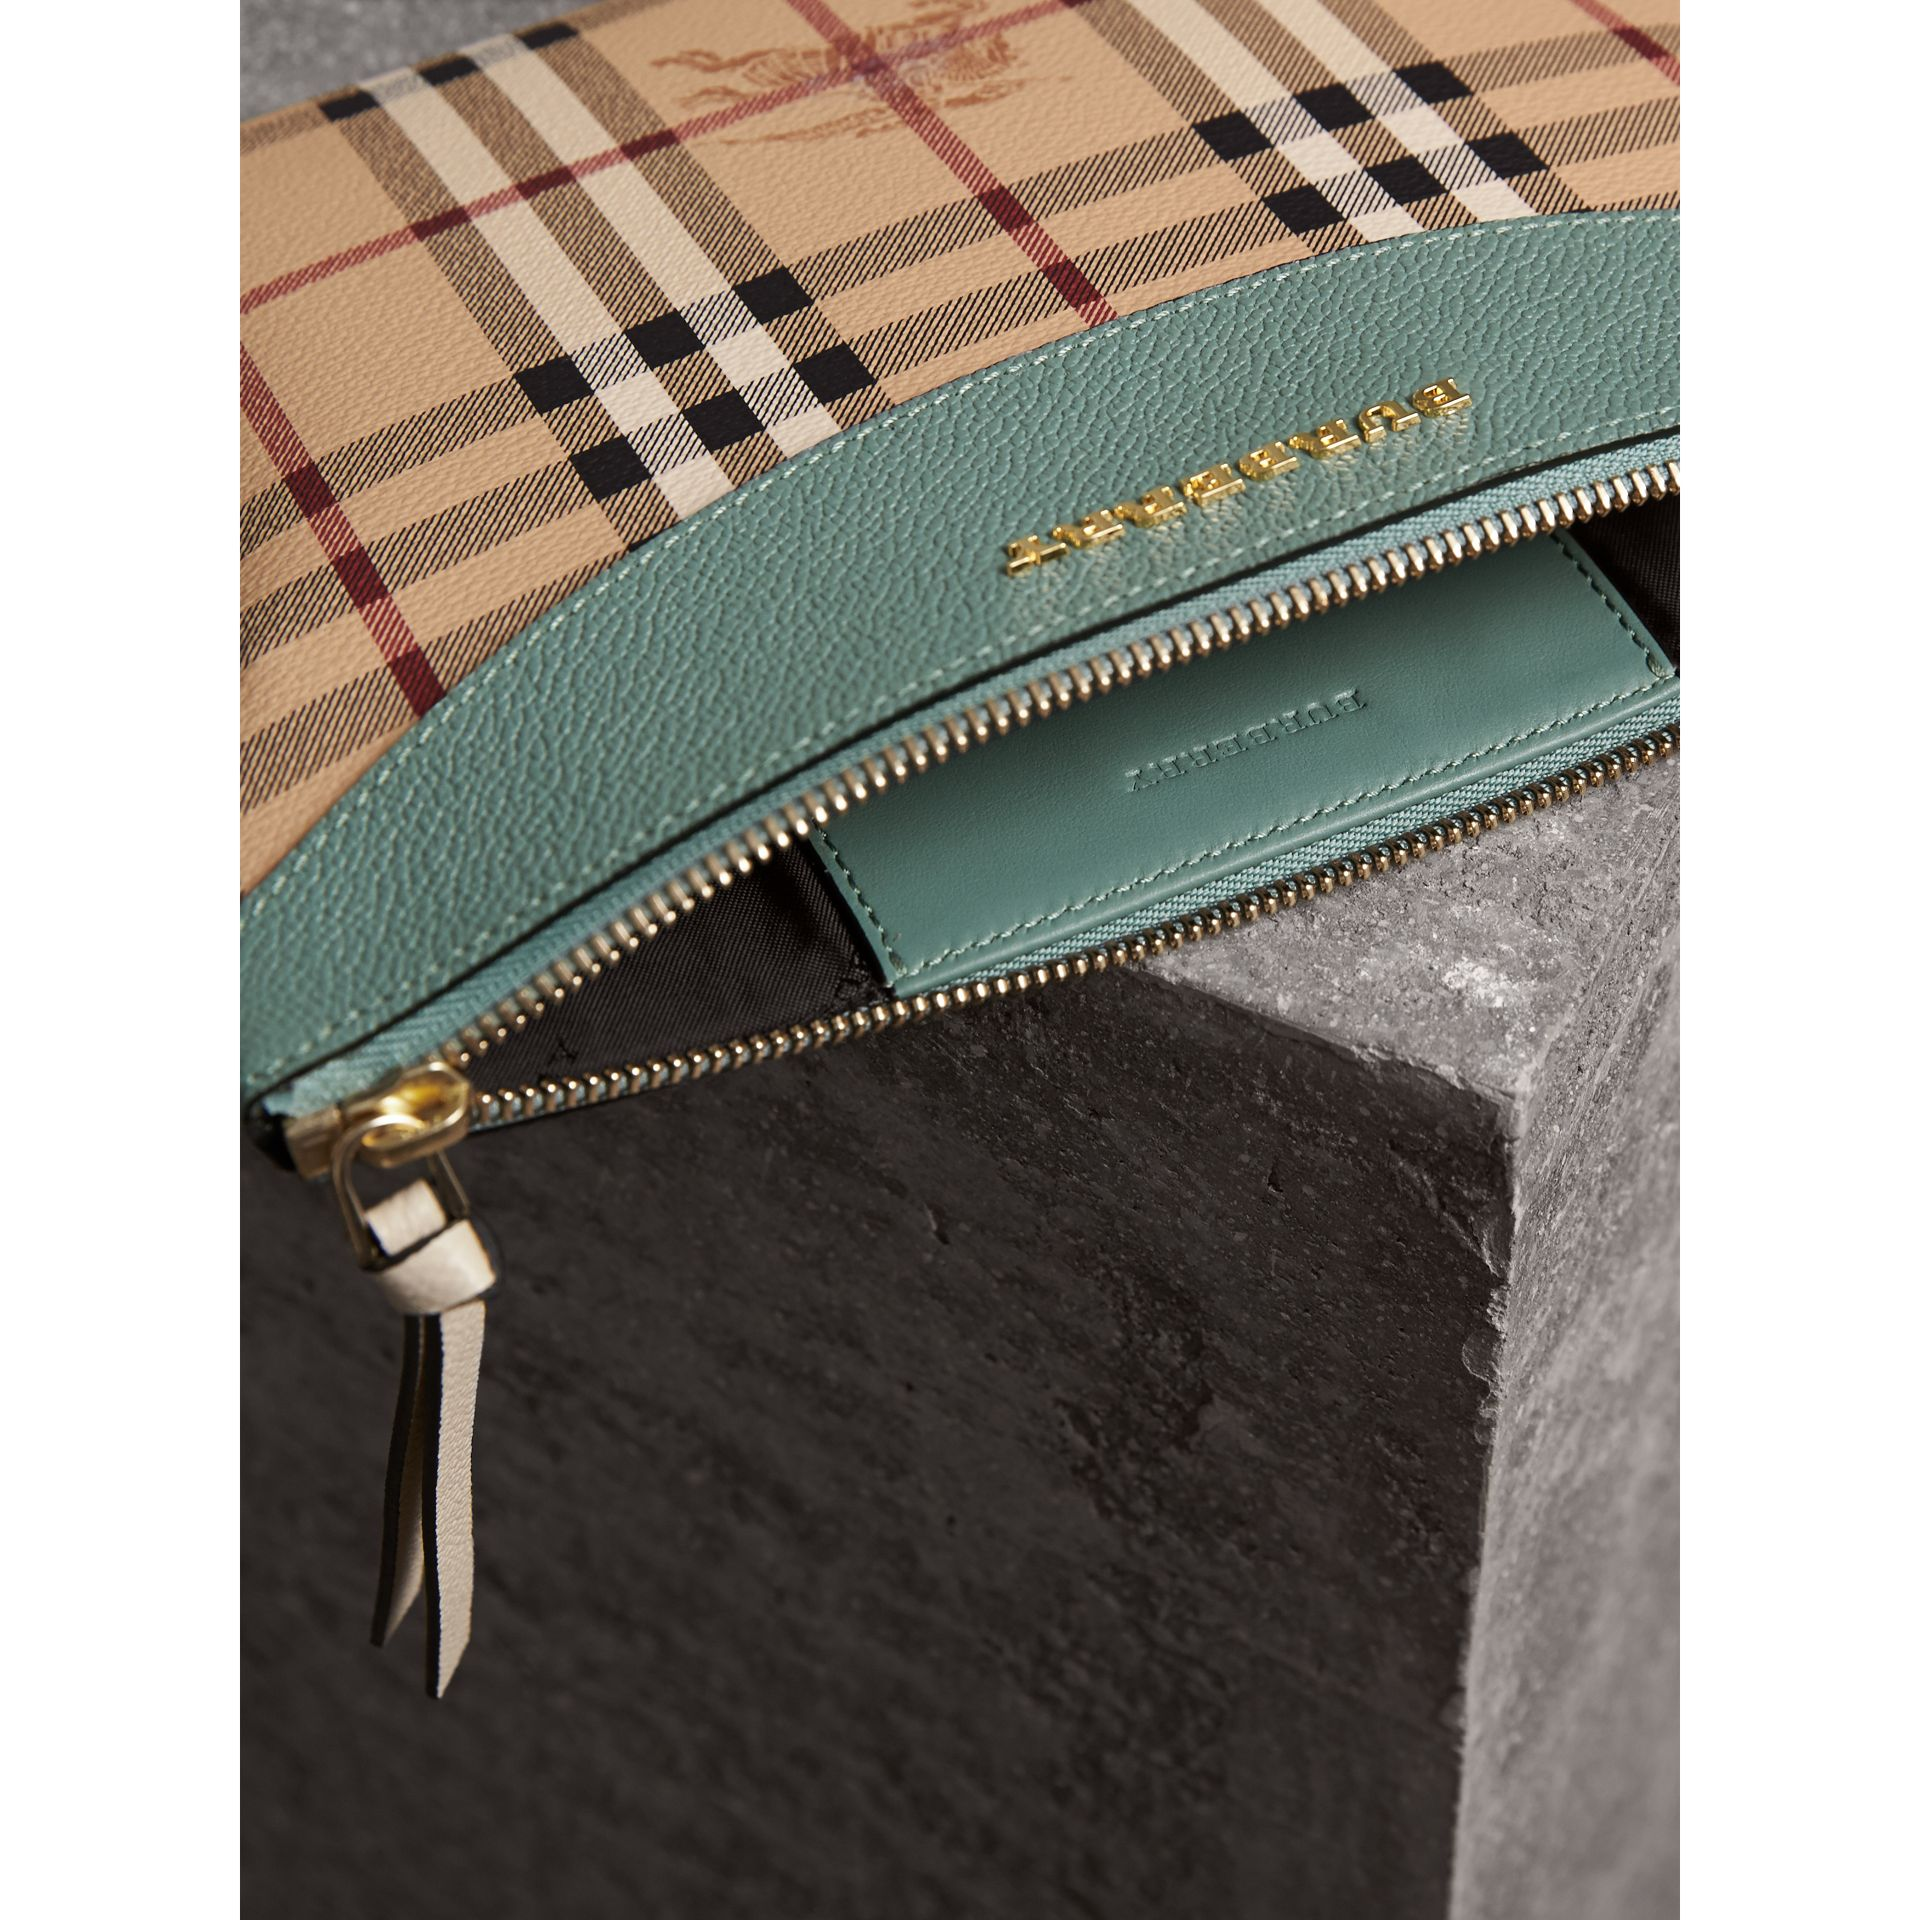 Haymarket Check and Two-tone Leather Clutch Bag in Eucalyptus Green/multicolour - Women | Burberry United States - gallery image 6